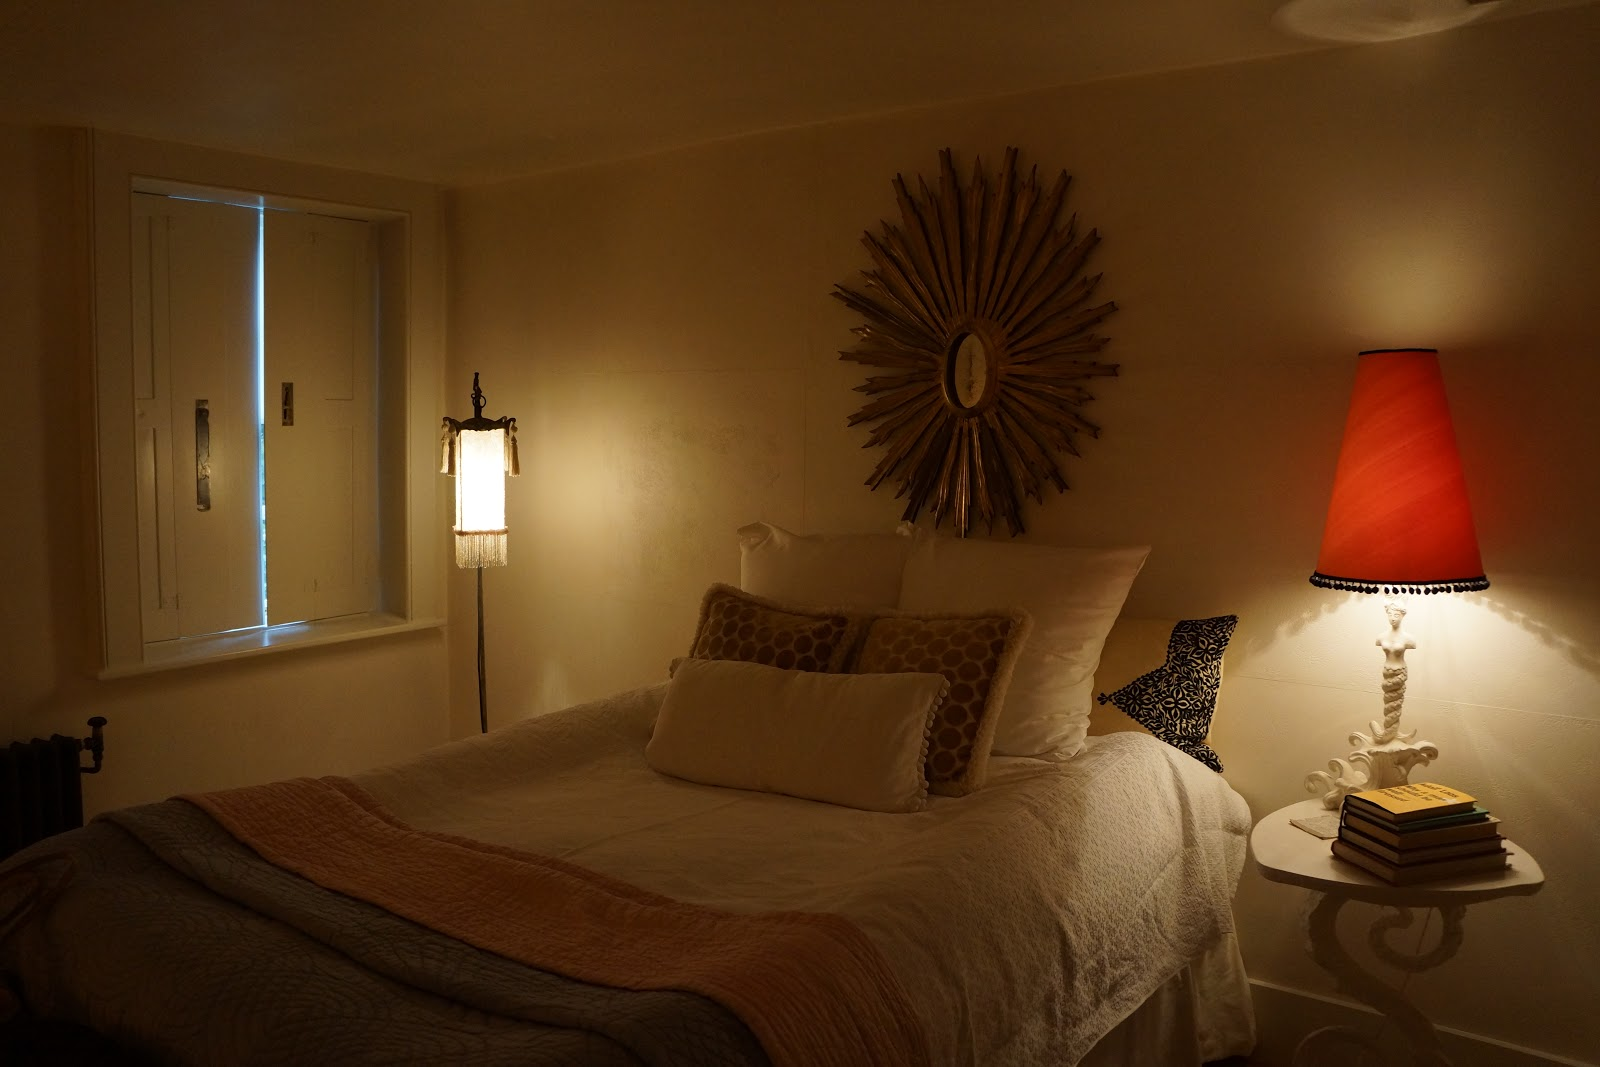 beige coloured bed at 40 winks hotel